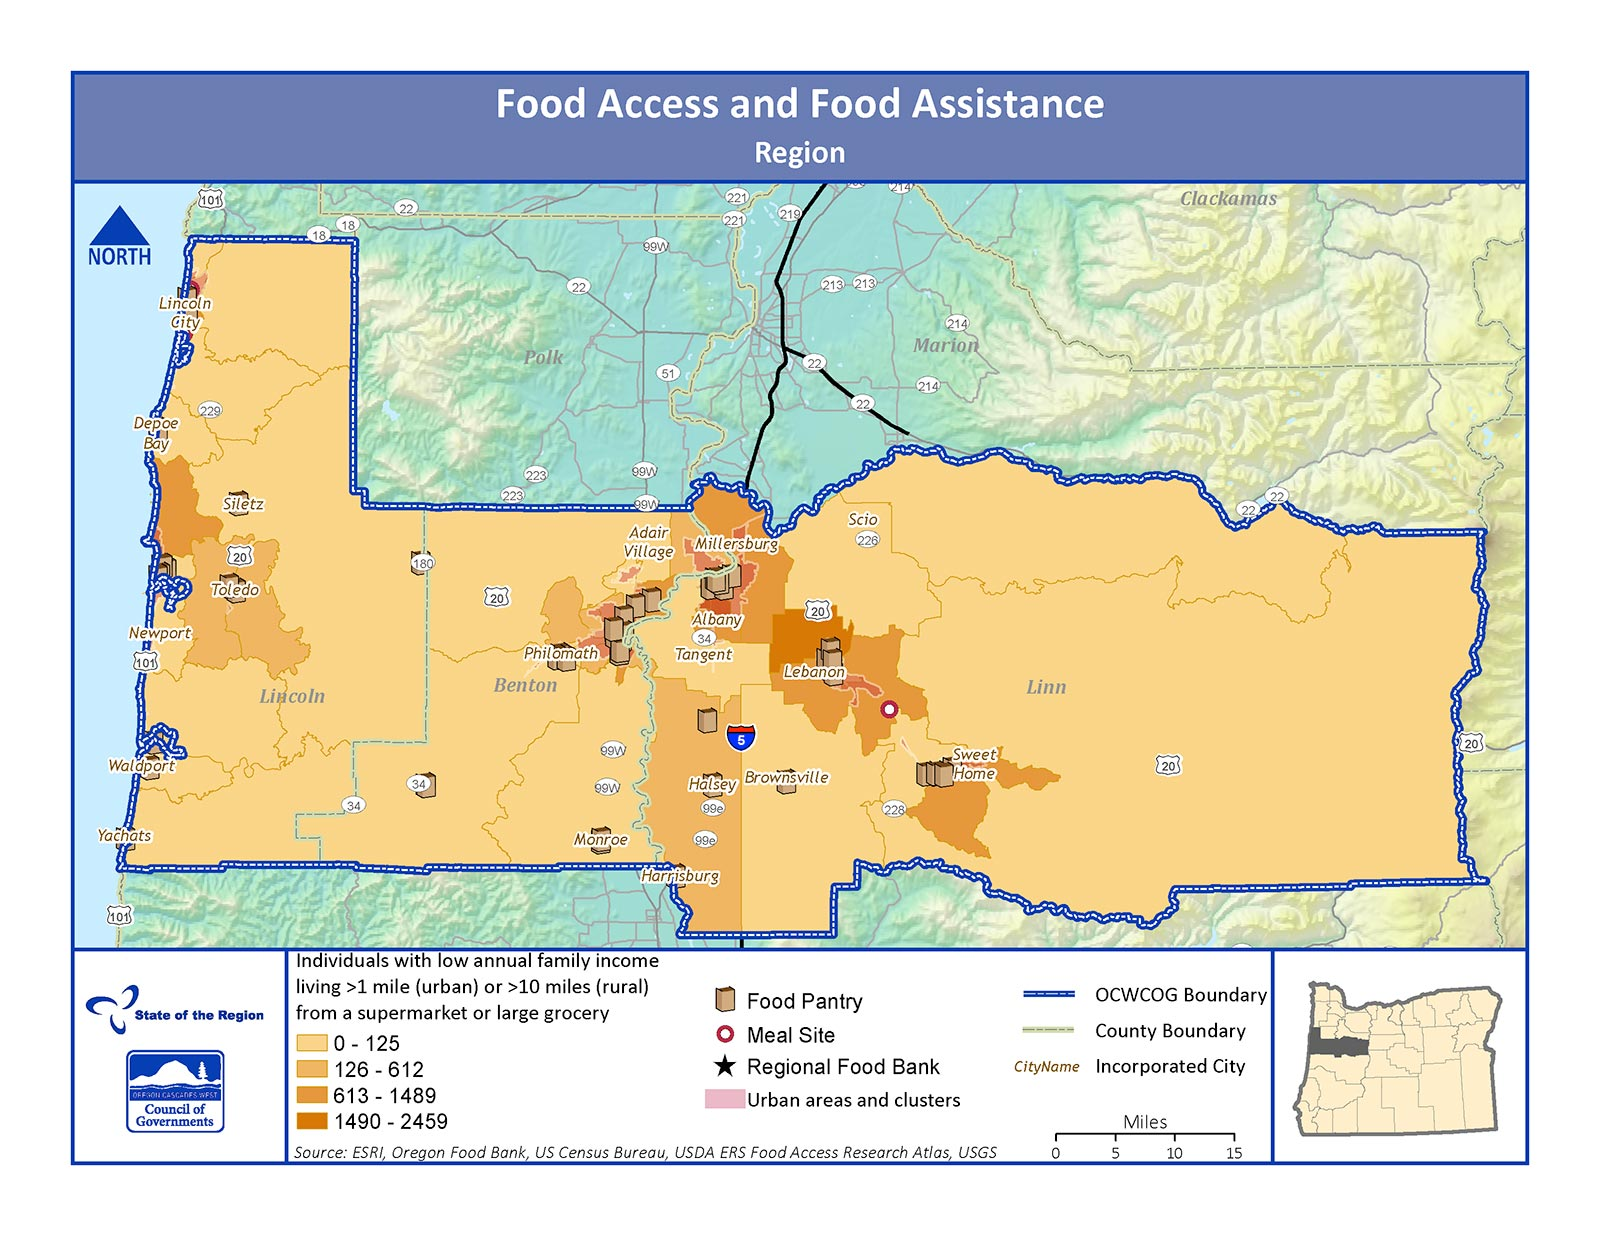 Map of Food Access and Food Assistance in the Region